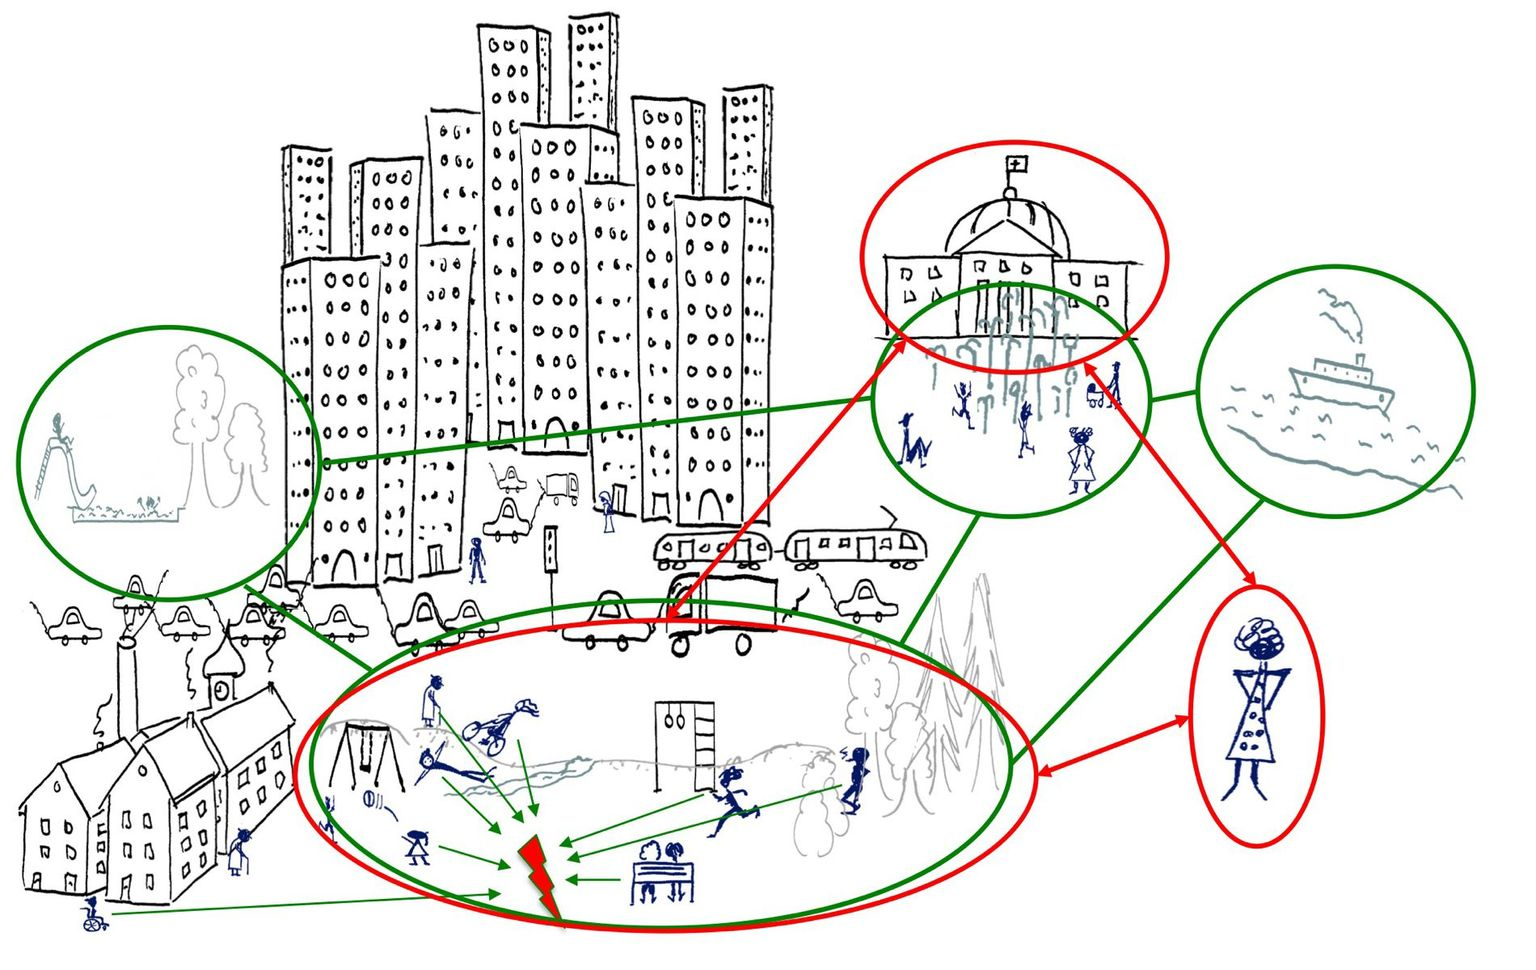 Rich picture on an urban planning problem situation